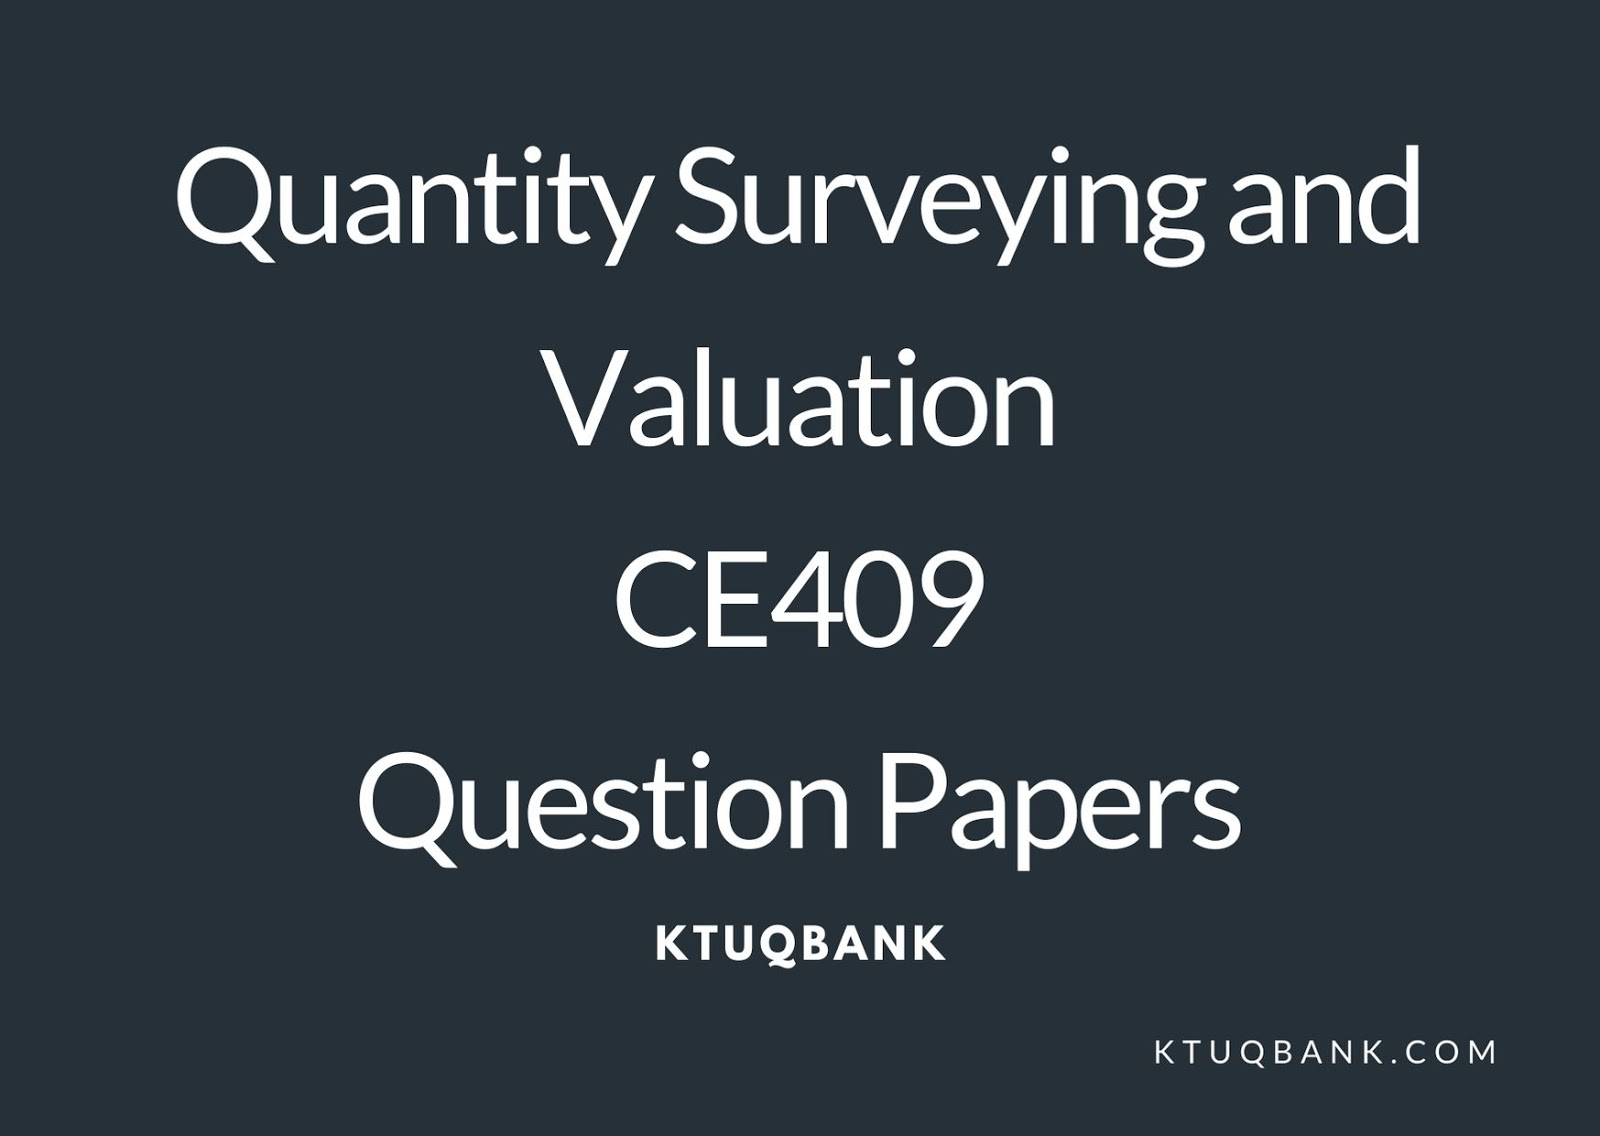 Quantity Surveying and Valuation | CE409 | Question Papers (2015 batch)